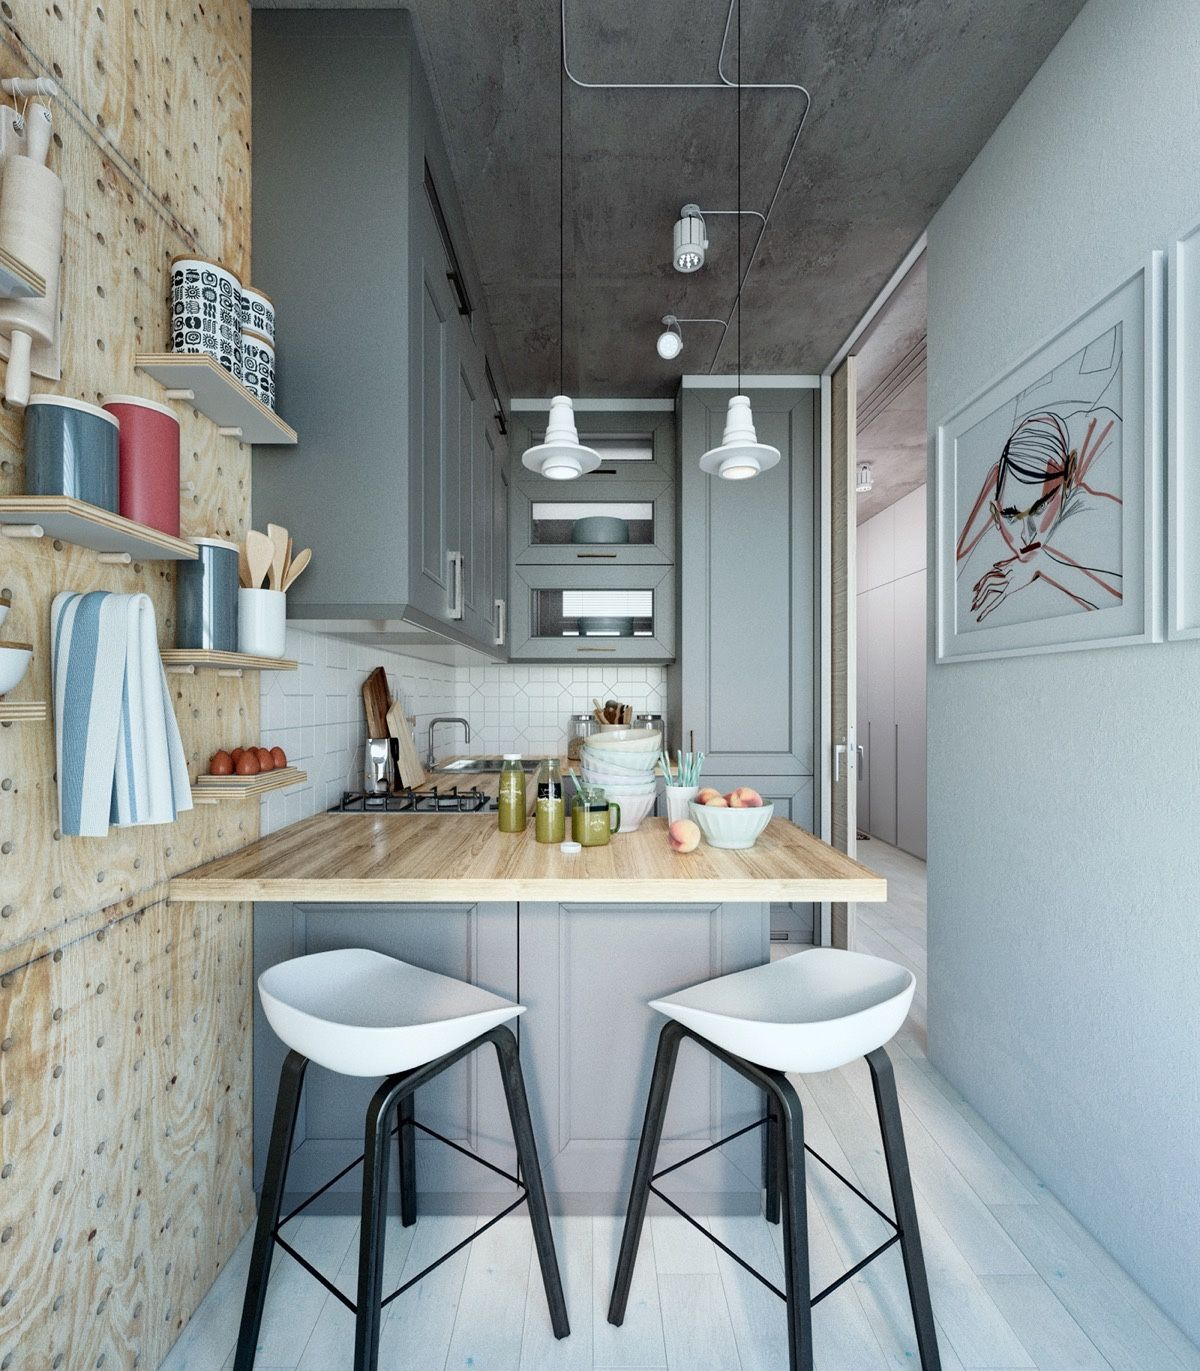 two takes on the same super small apartment interior design kitchen small apartment interior on kitchen interior small space id=60383